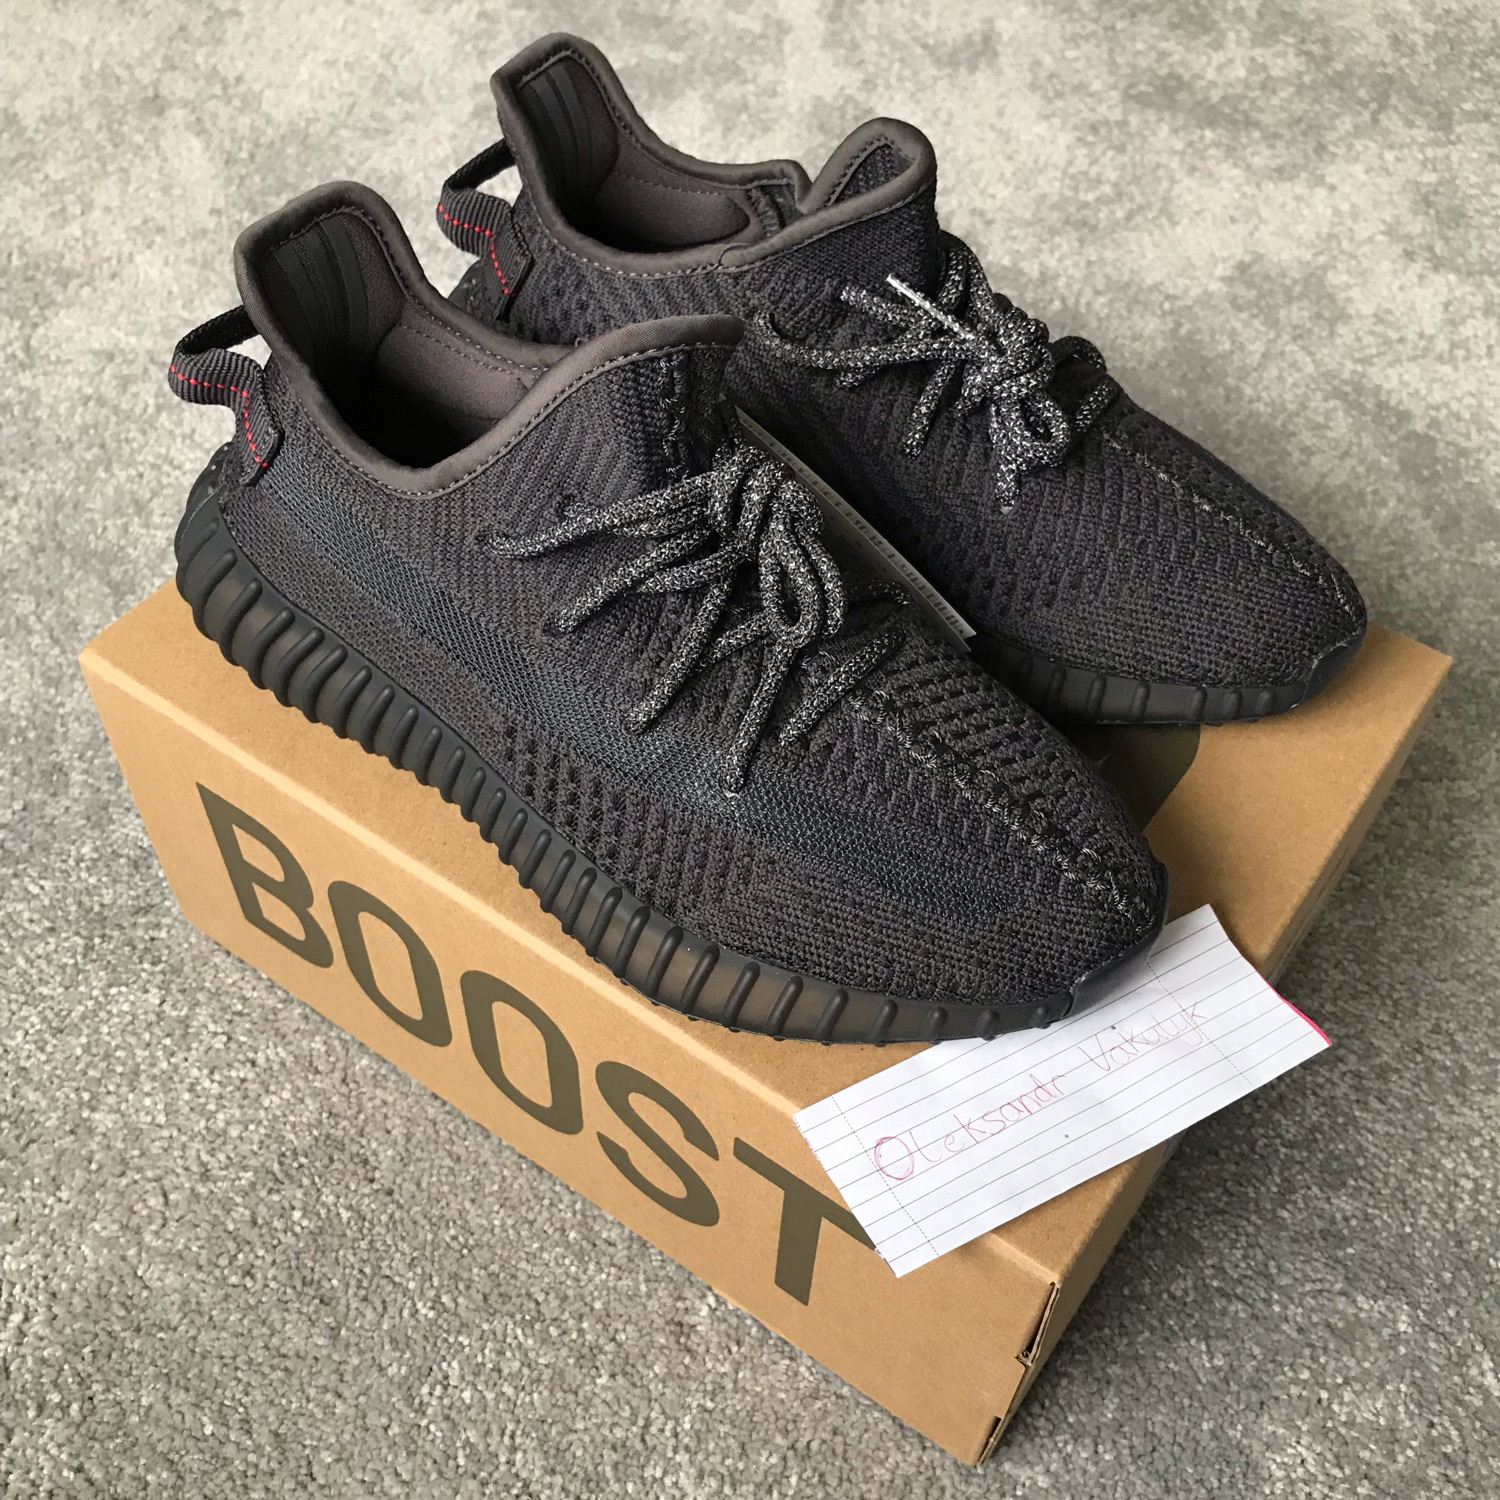 100% authentic 49b5f fd1ed Adidas Yeezy Boost 350 V2 Black Non Reflective